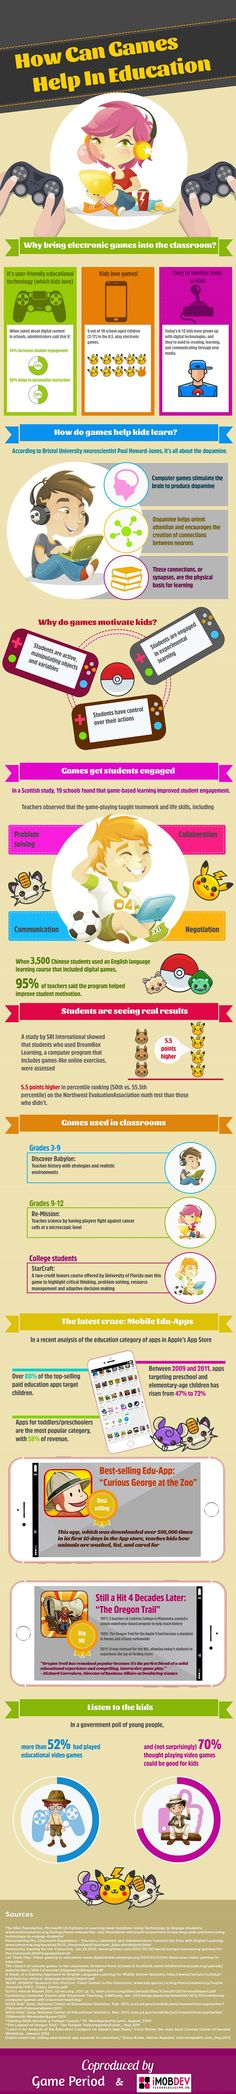 How Can Games Help in Education Infographic - http://elearninginfographics.com/games-help-in-education-infographic/